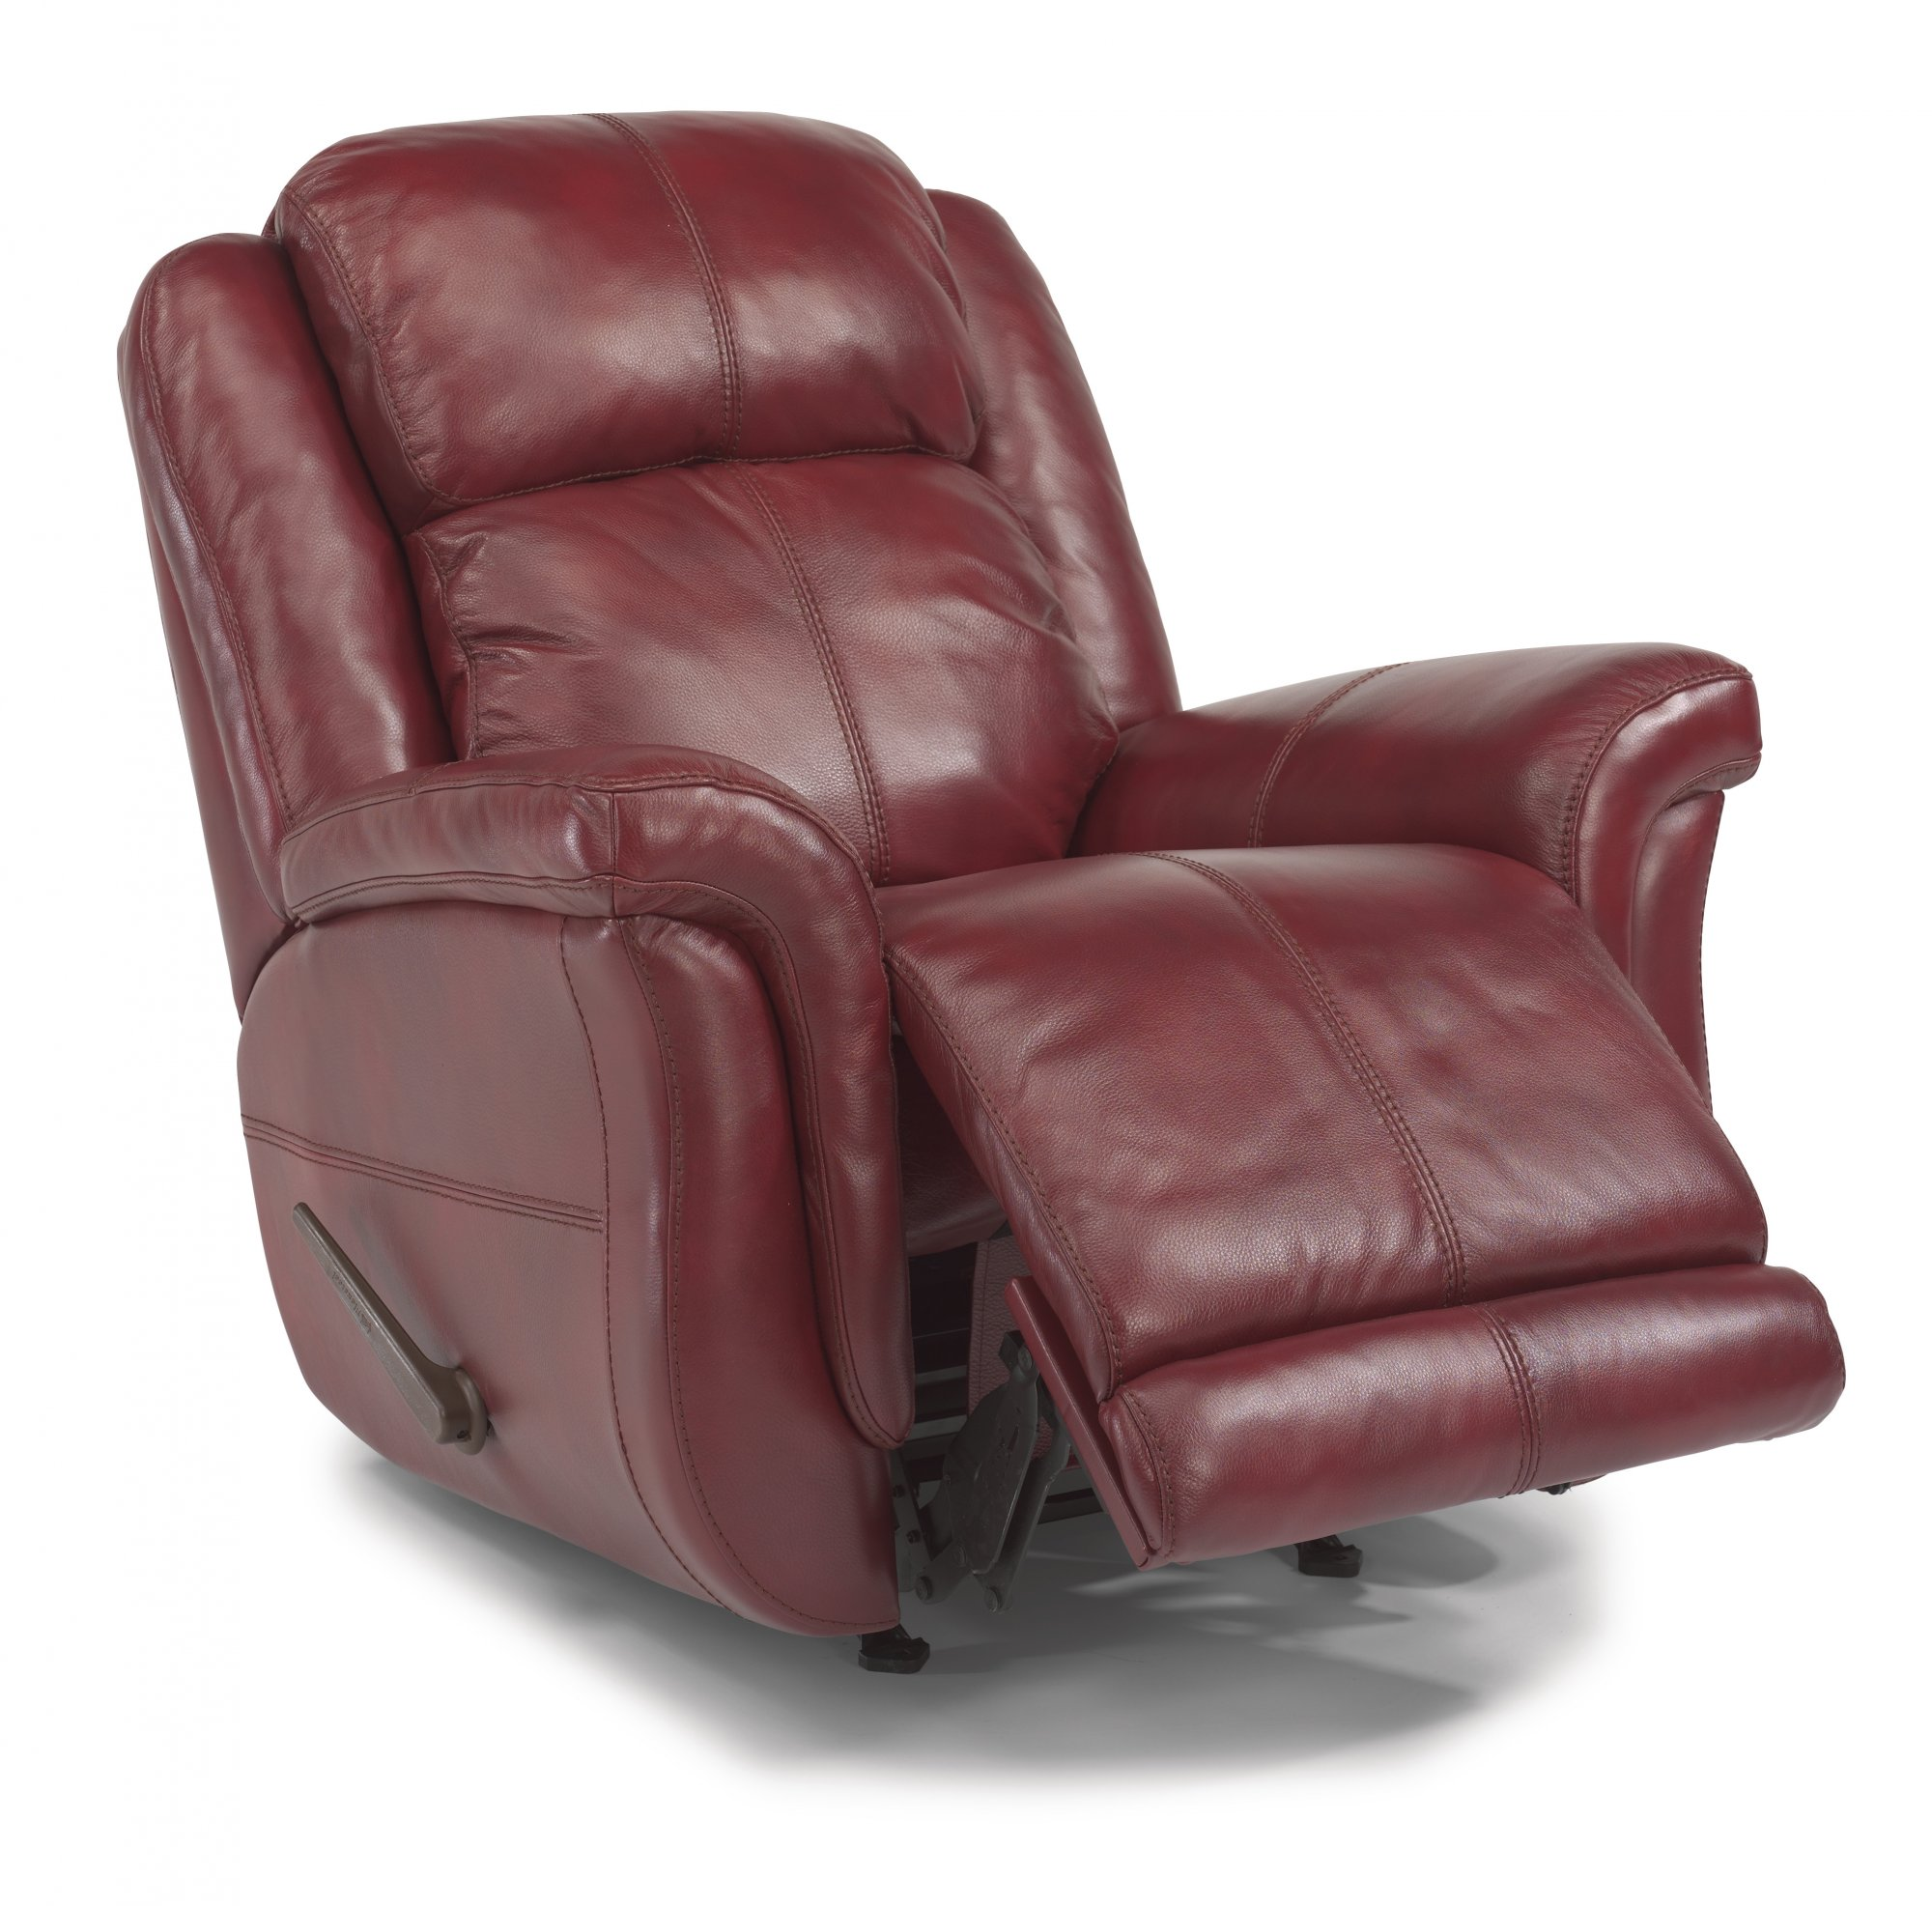 Electric Recliner Leather Chairs Brookings Flexsteel